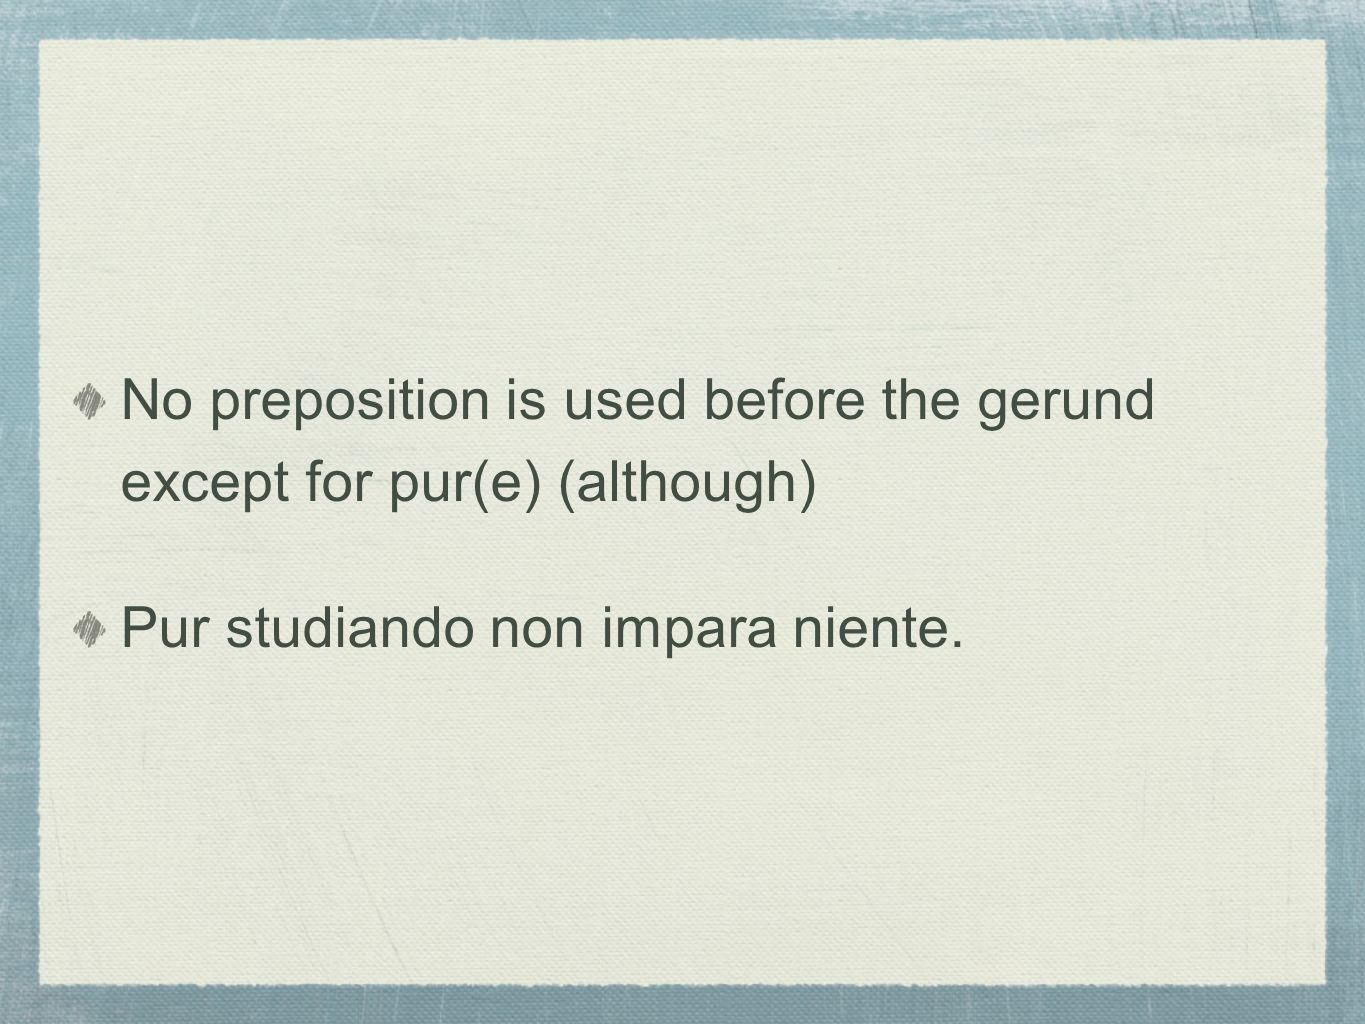 No preposition is used before the gerund except for pur(e) (although)